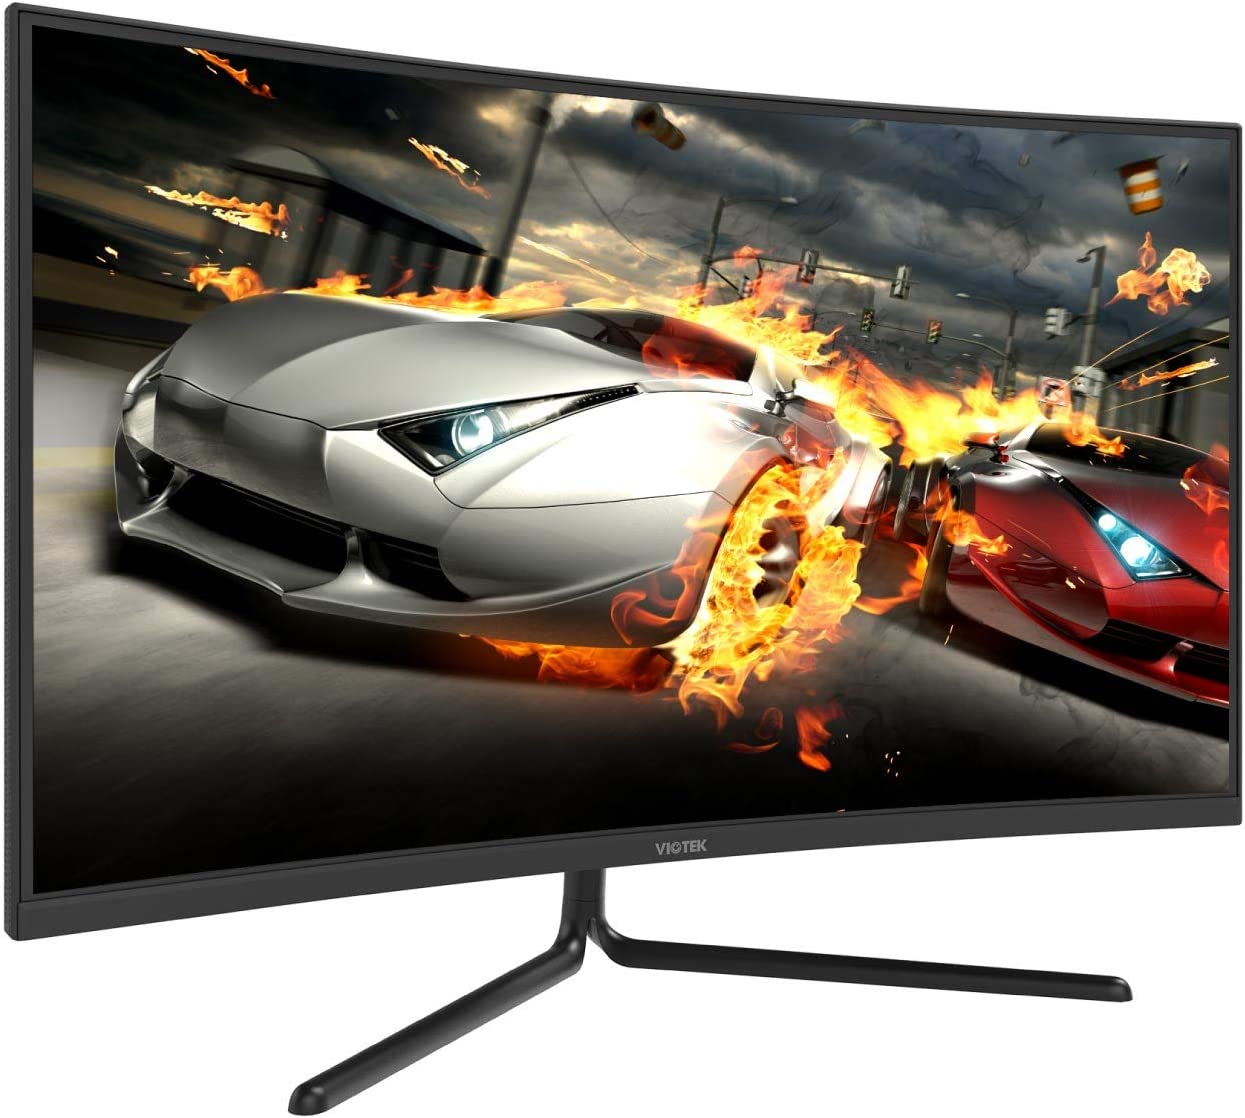 VIOTEK GN32DB 32-Inch Curved Gaming Monitor with FreeSync